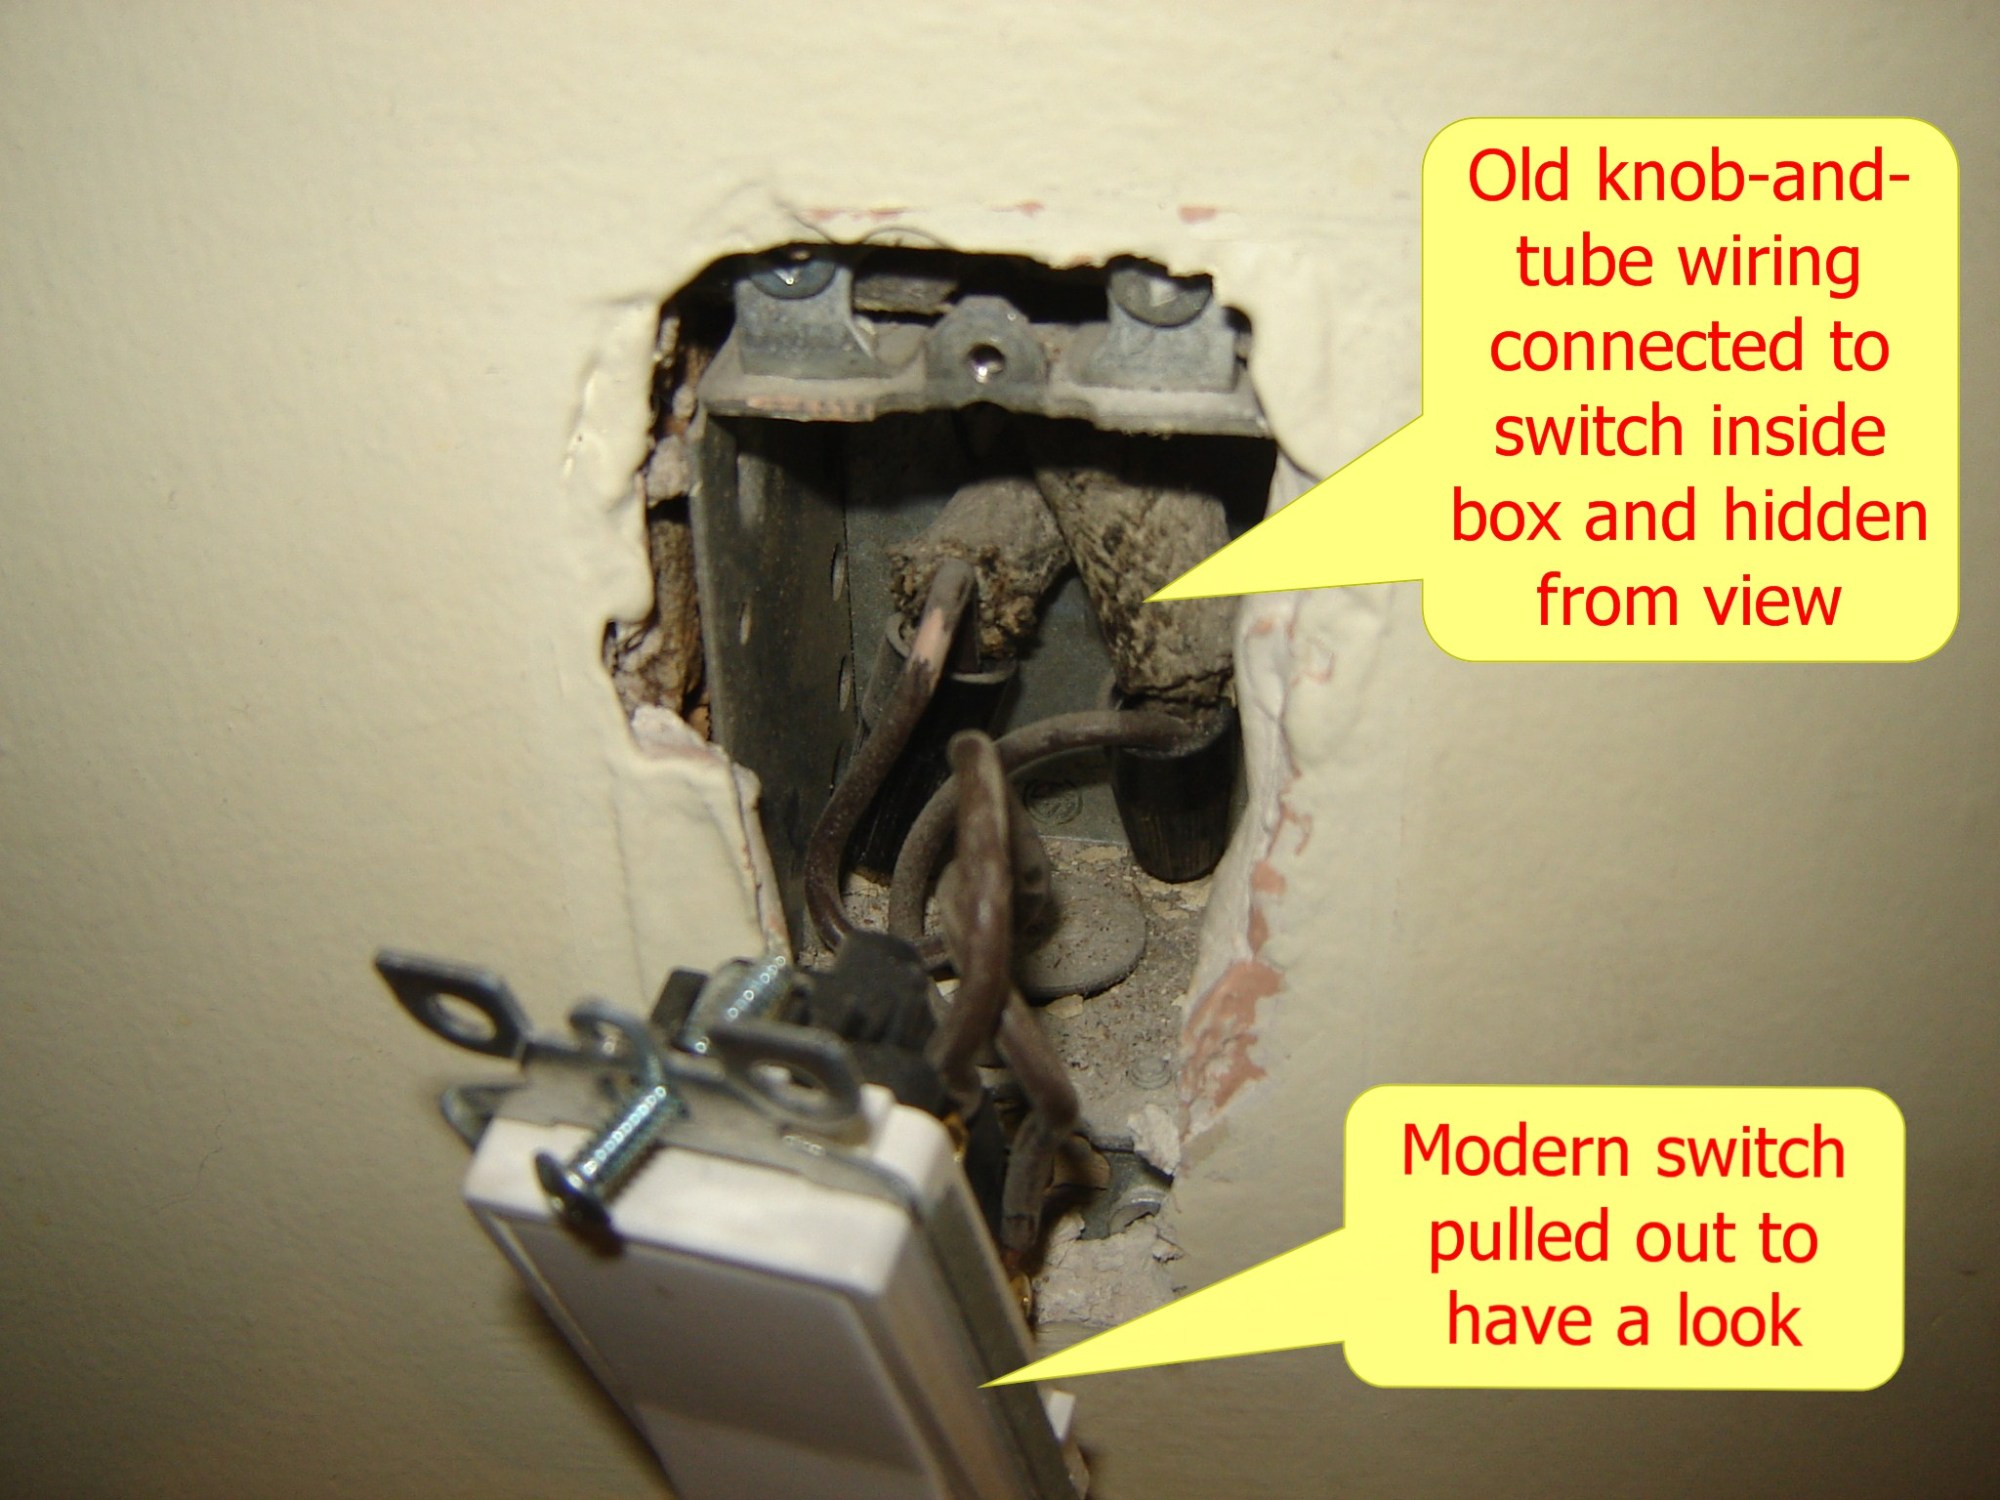 hight resolution of hidden knob and tube wiring